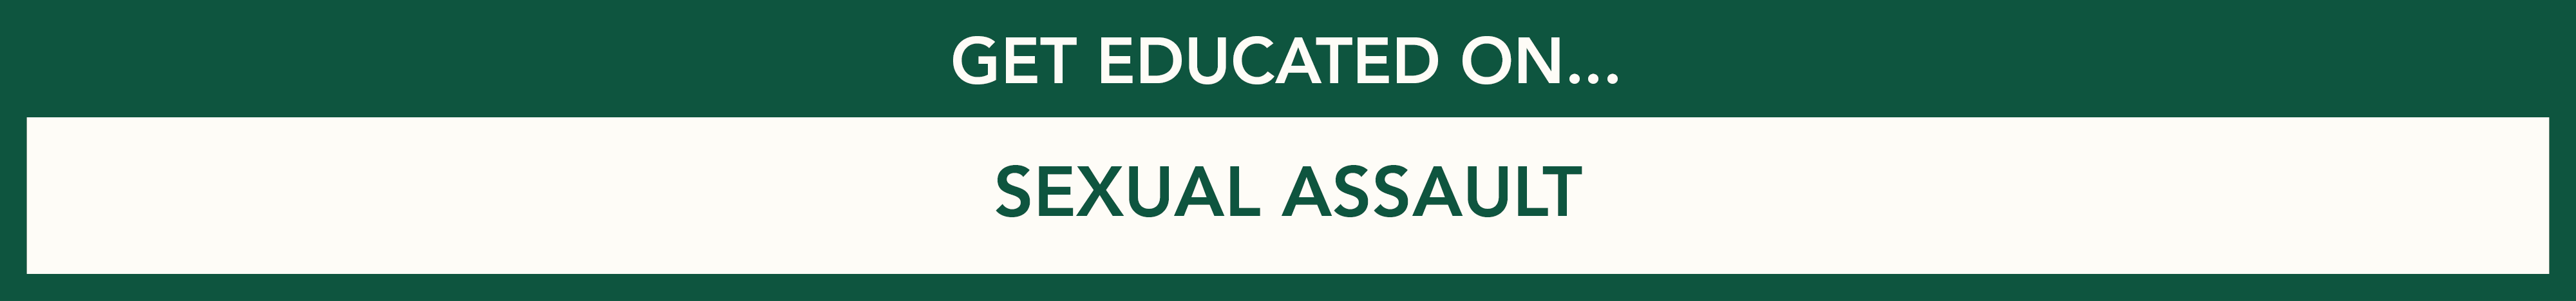 Get educated on sexual assault